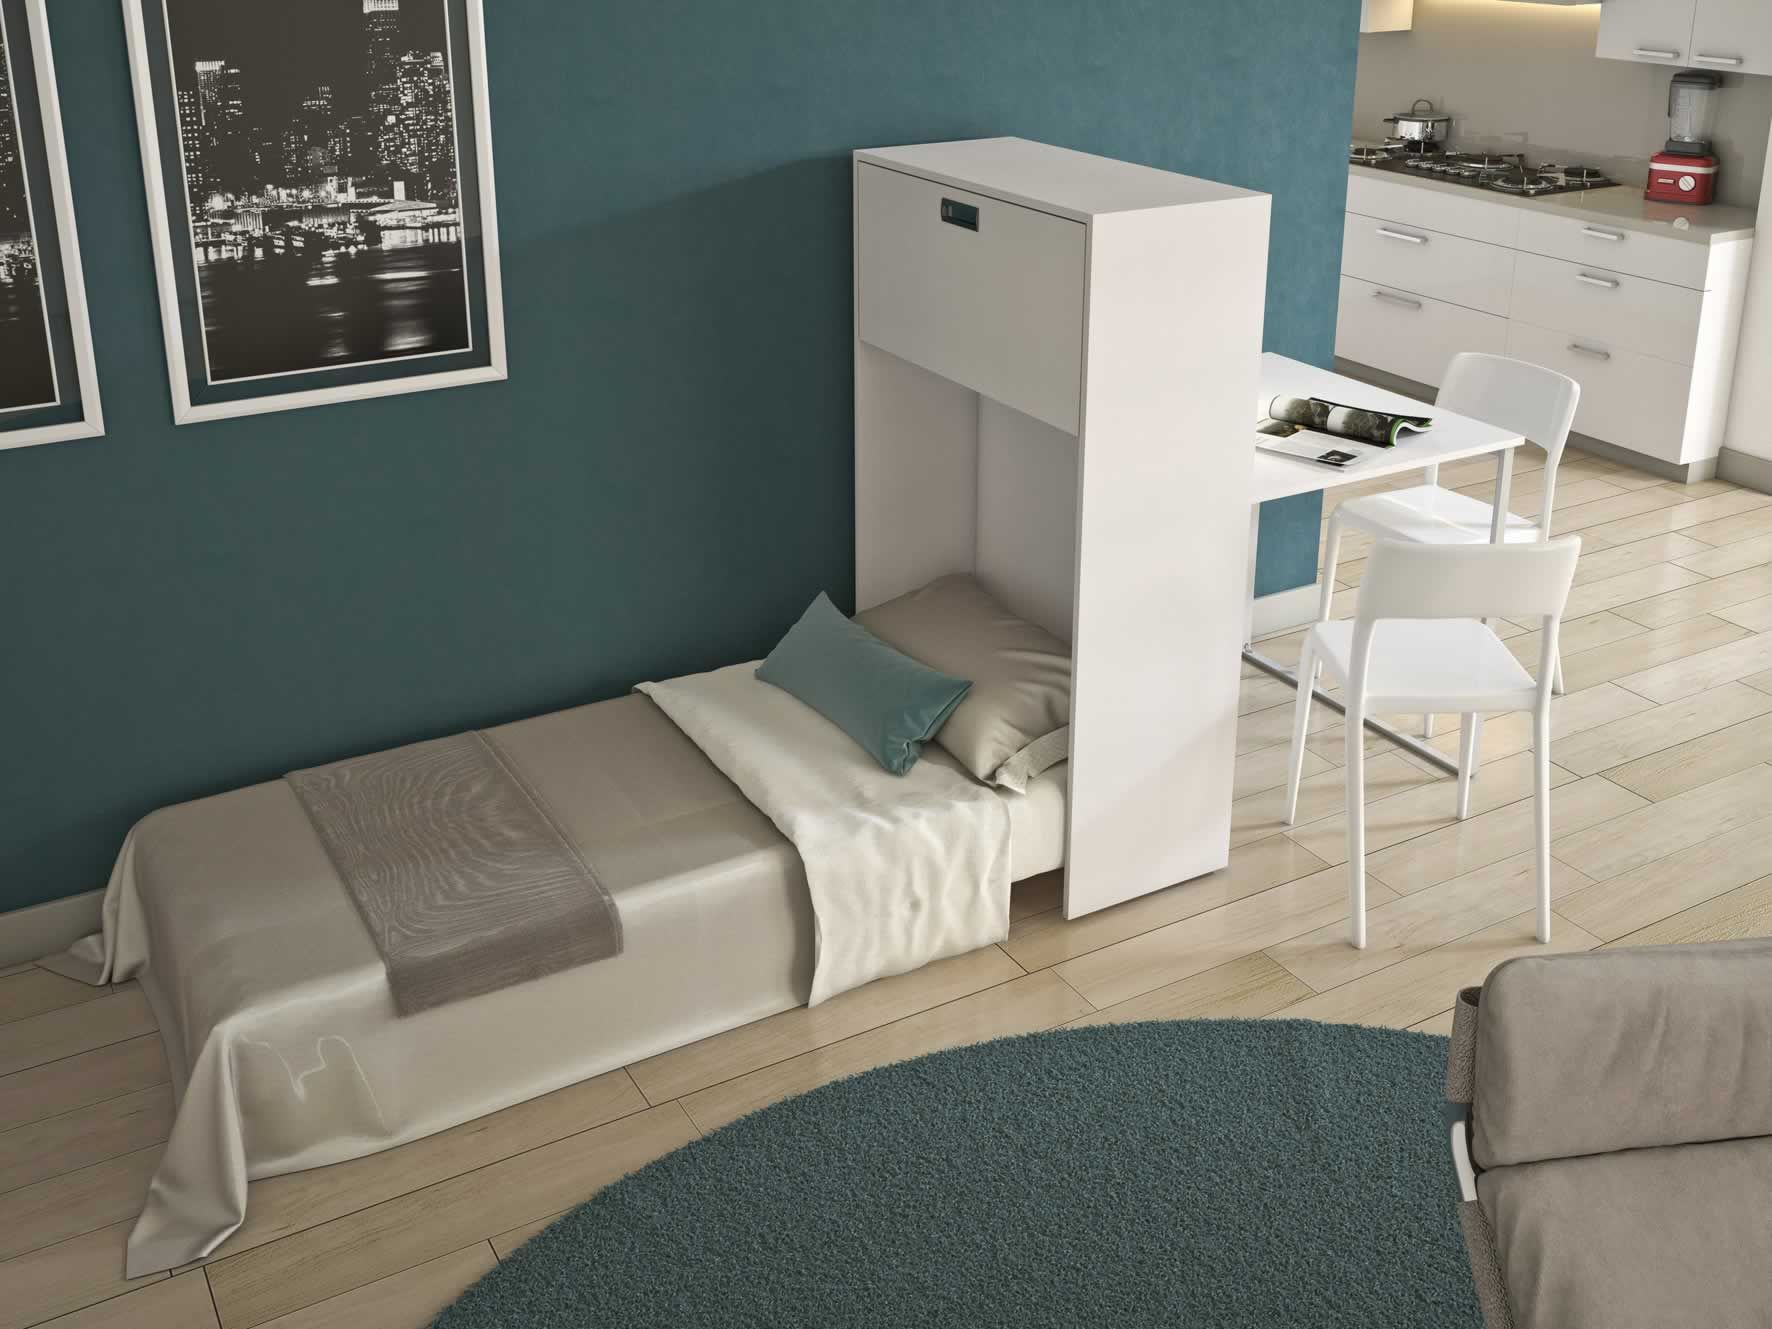 Mobile A Letto.Mobile Letto Day Night Big E Un Mobile Trasformabile In